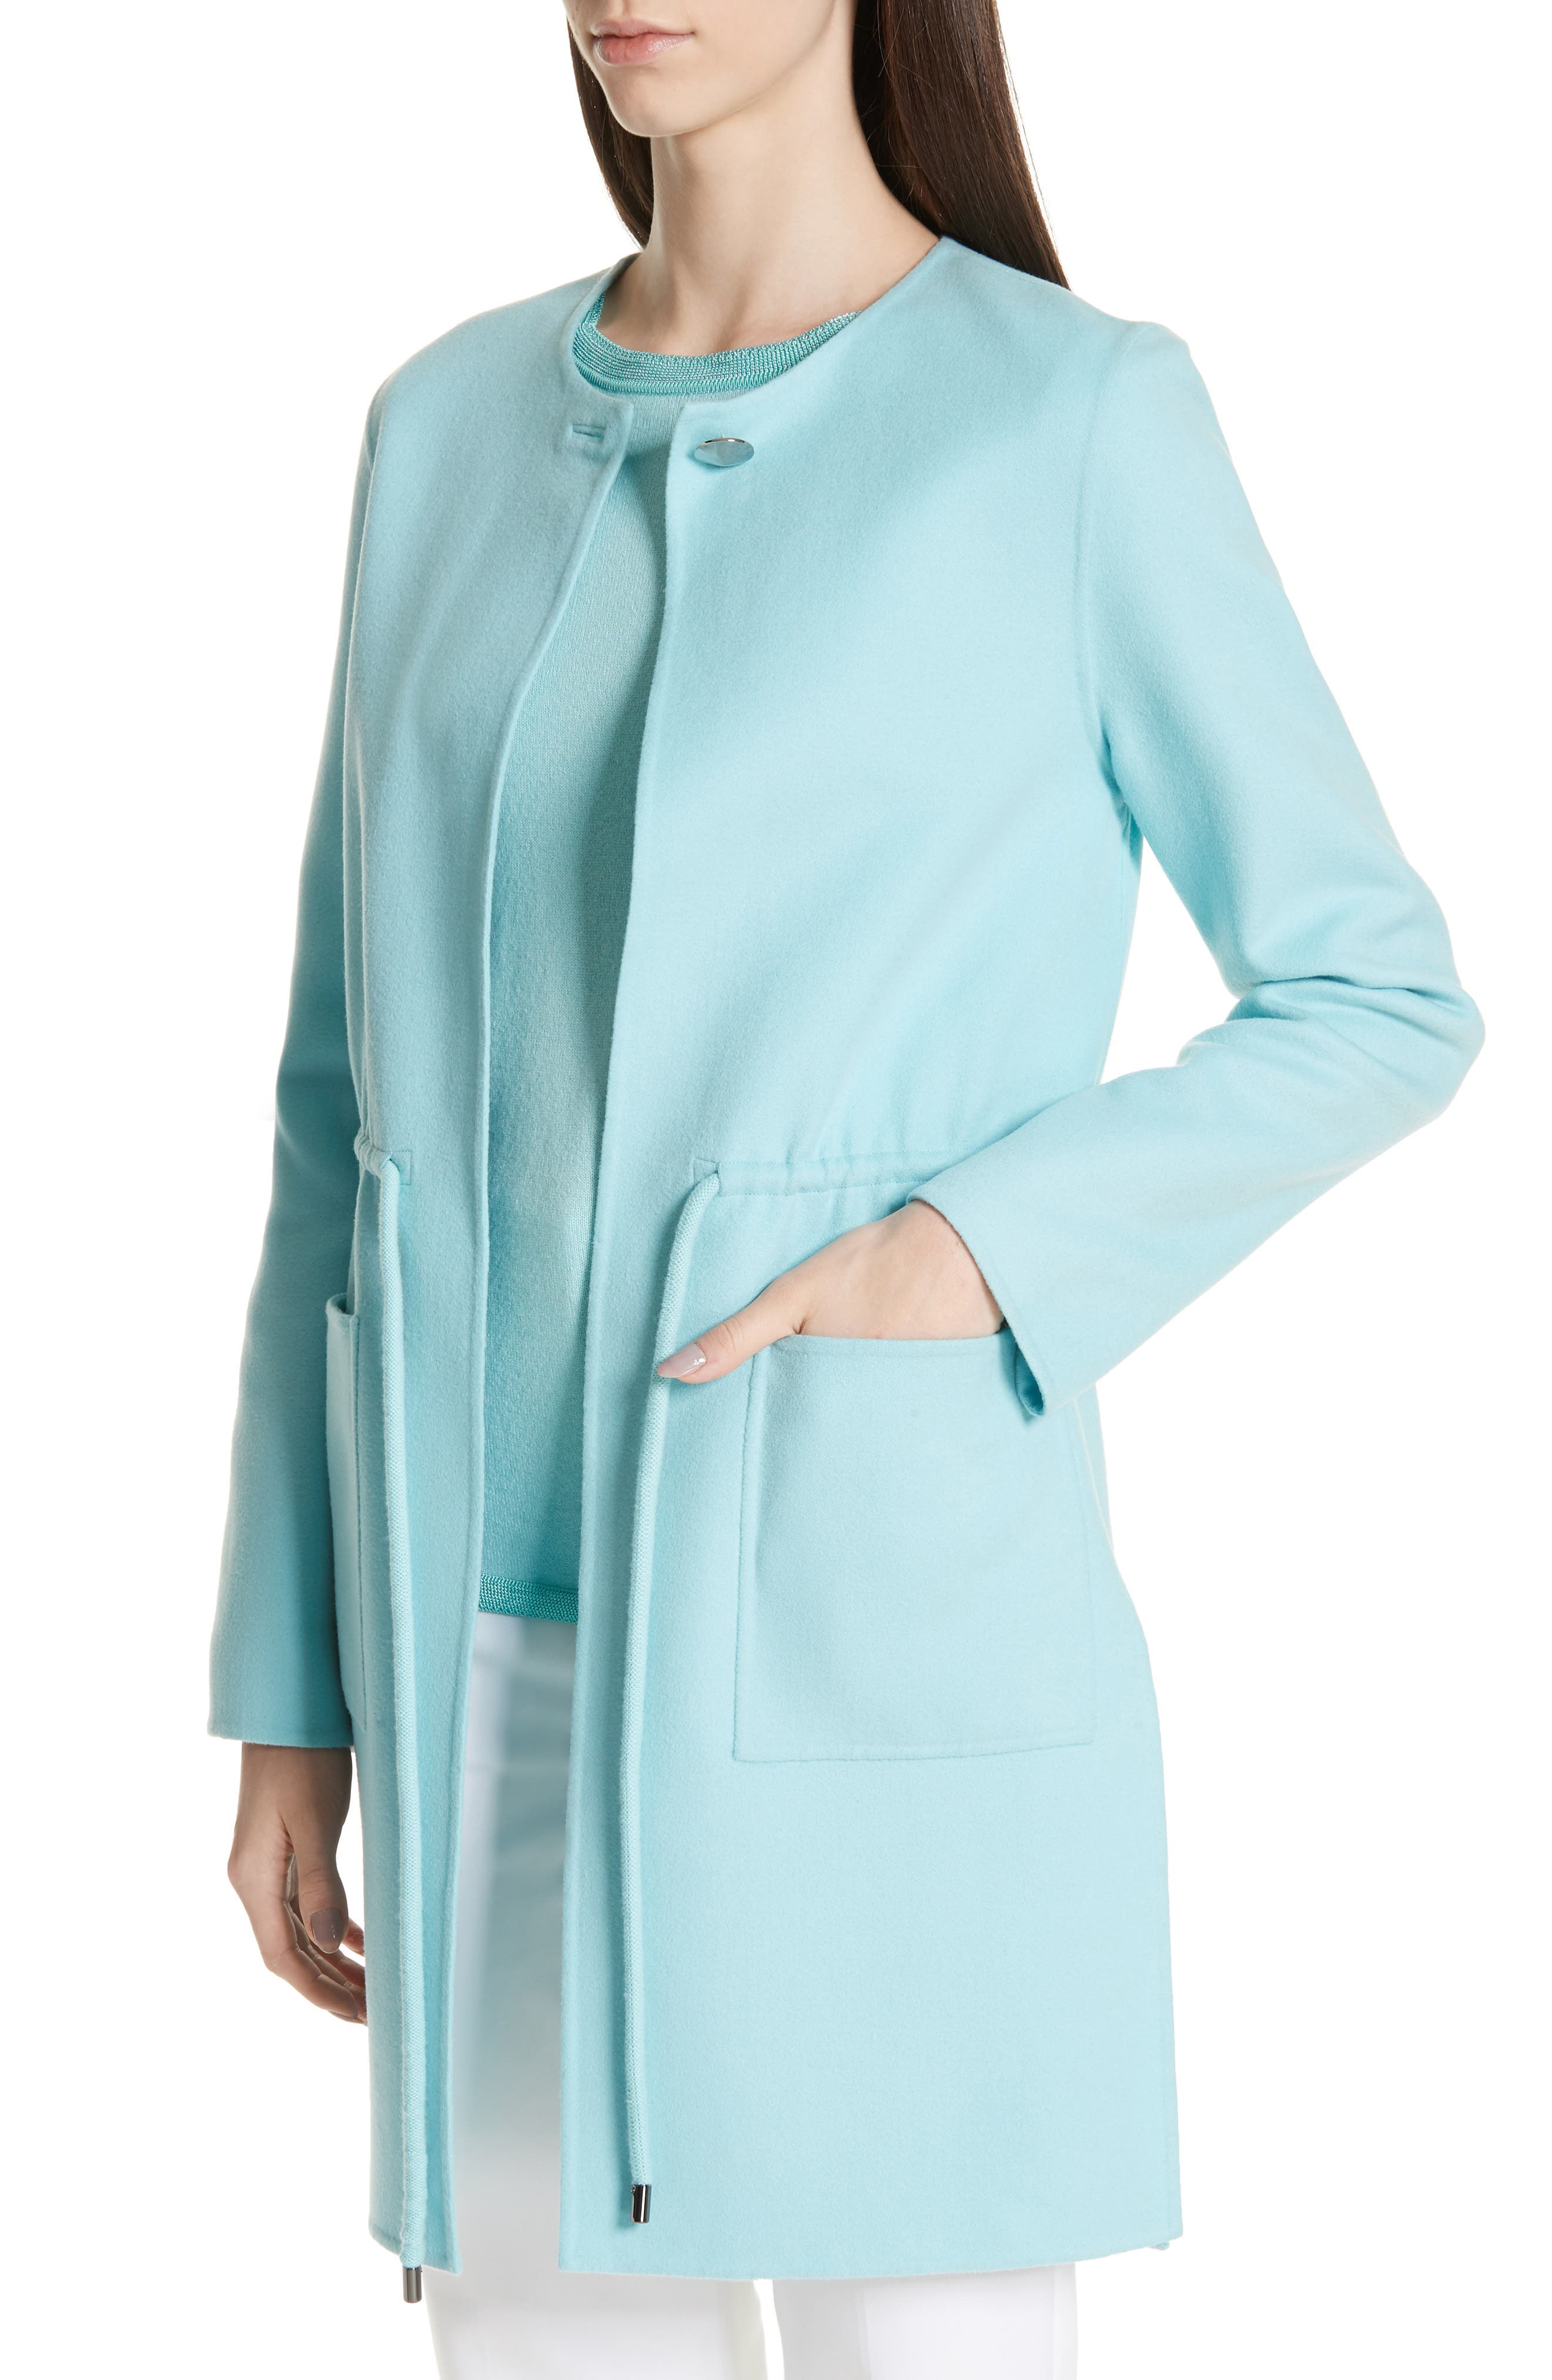 ST. JOHN COLLECTION,                             Double Face Wool & Cashmere Jacket,                             Alternate thumbnail 5, color,                             AQUAMARINE